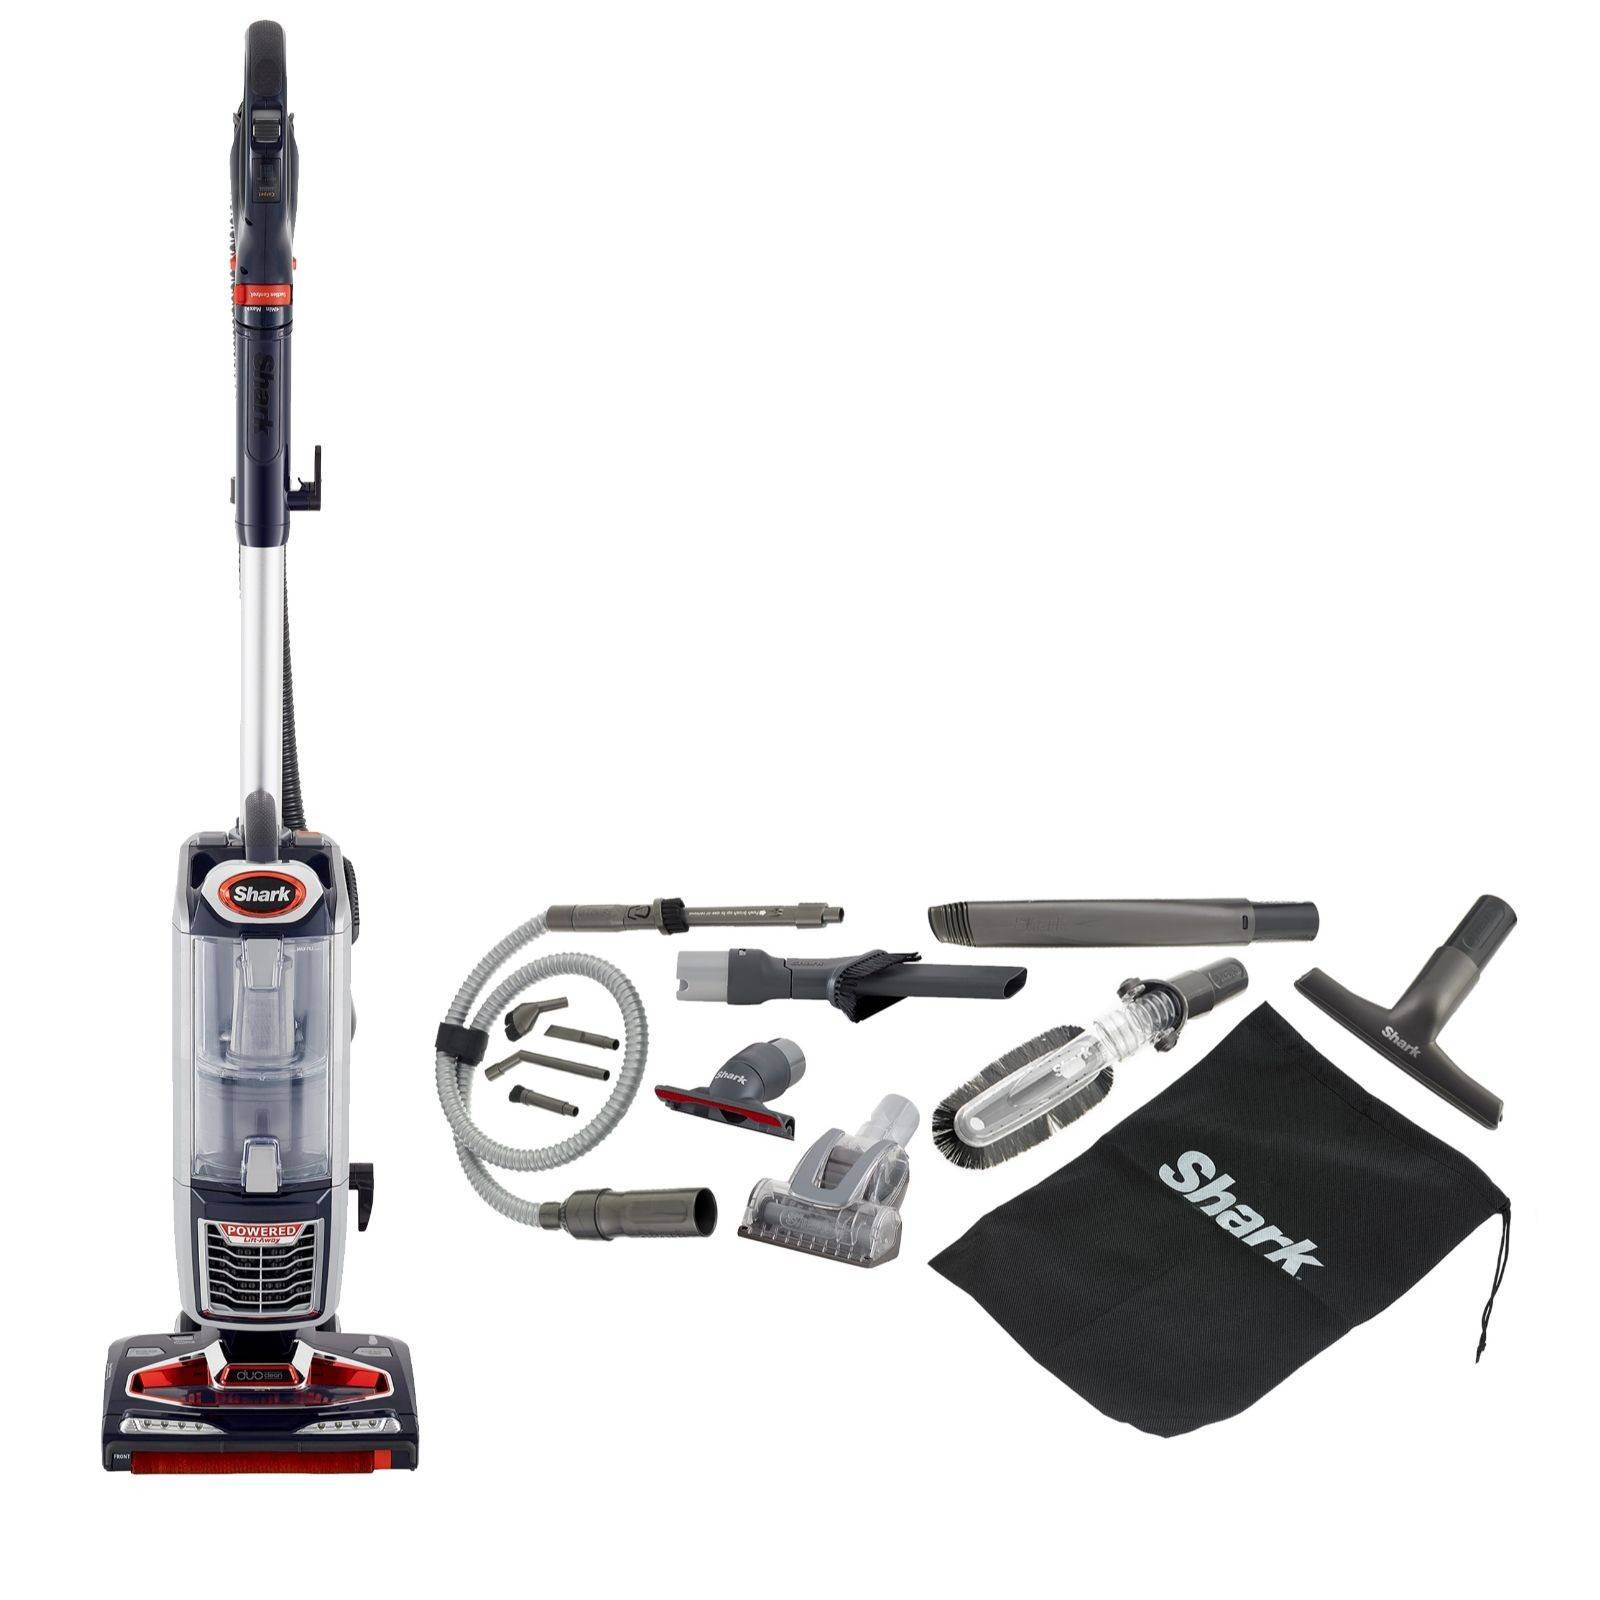 hardwood floor steam cleaner shark of 17 unique shark hardwood floor cleaner photograph dizpos regarding shark hardwood floor cleaner best of shark duoclean powered lift away true pet va